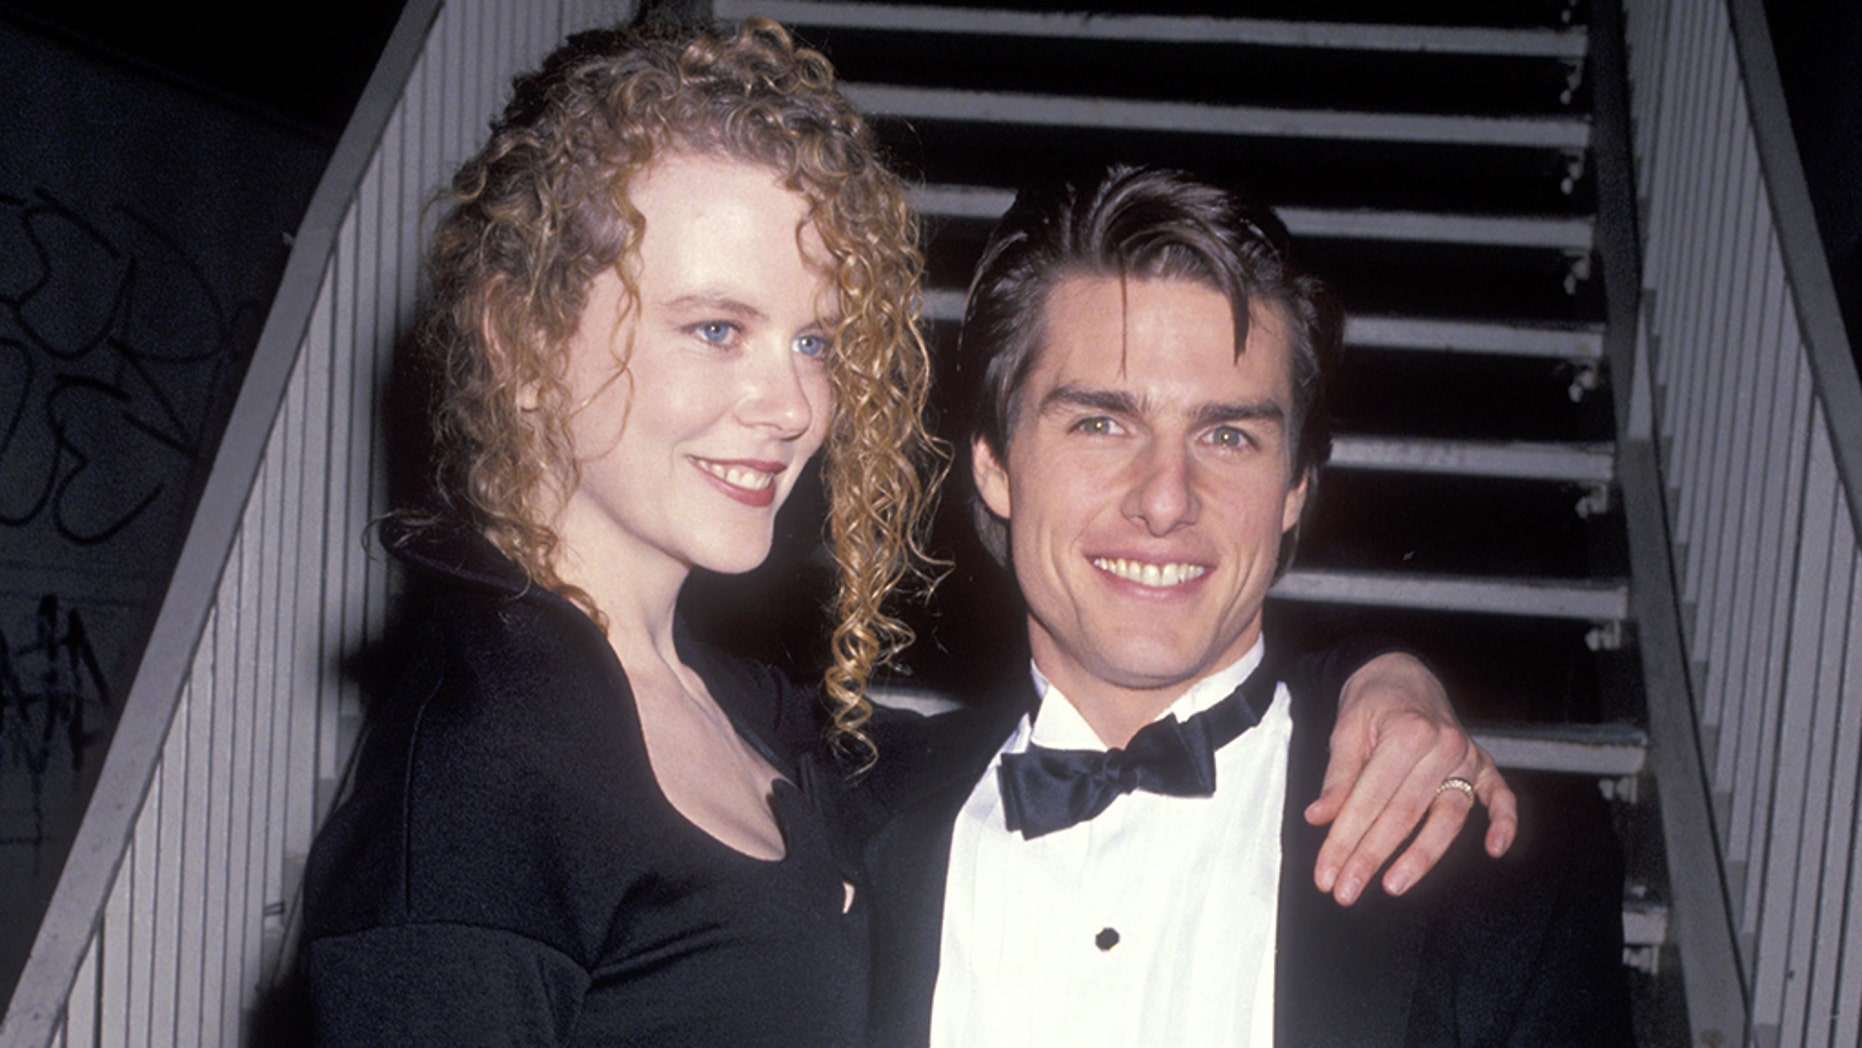 Nicole Kidman and Tom Cruise attend the 19th Annual American Film Institute (AFI) Lifetime Achievement Award Salute to Kirk Douglas on March 7, 1991 at Beverly Hilton Hotel in Beverly Hills, California.